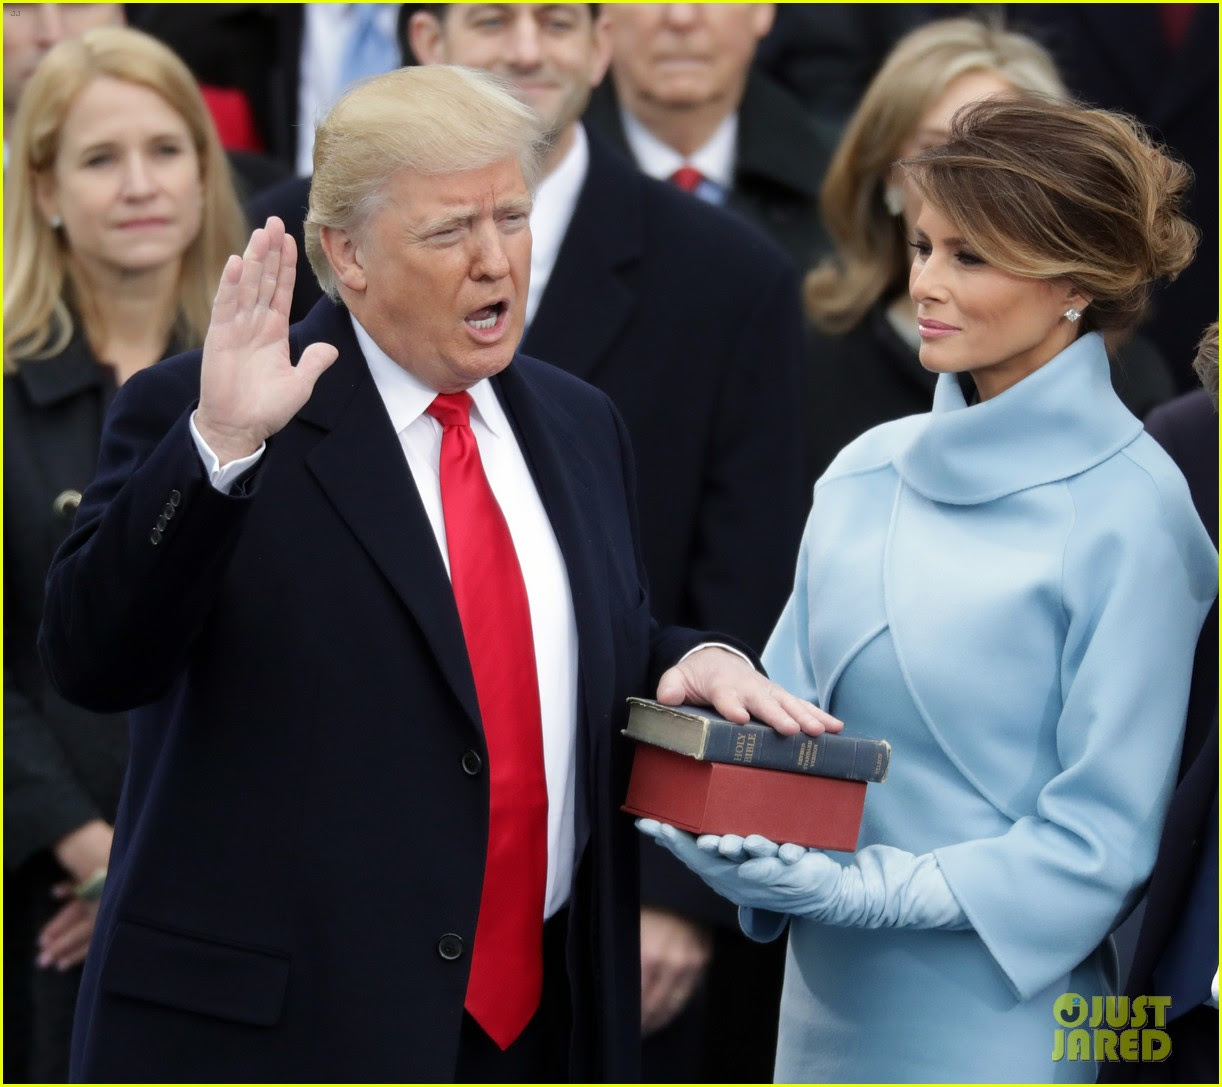 http://cdn02.cdn.justjared.com/wp-content/uploads/2017/01/trump-speeche/donald-trump-inauguration-speech-26.jpg